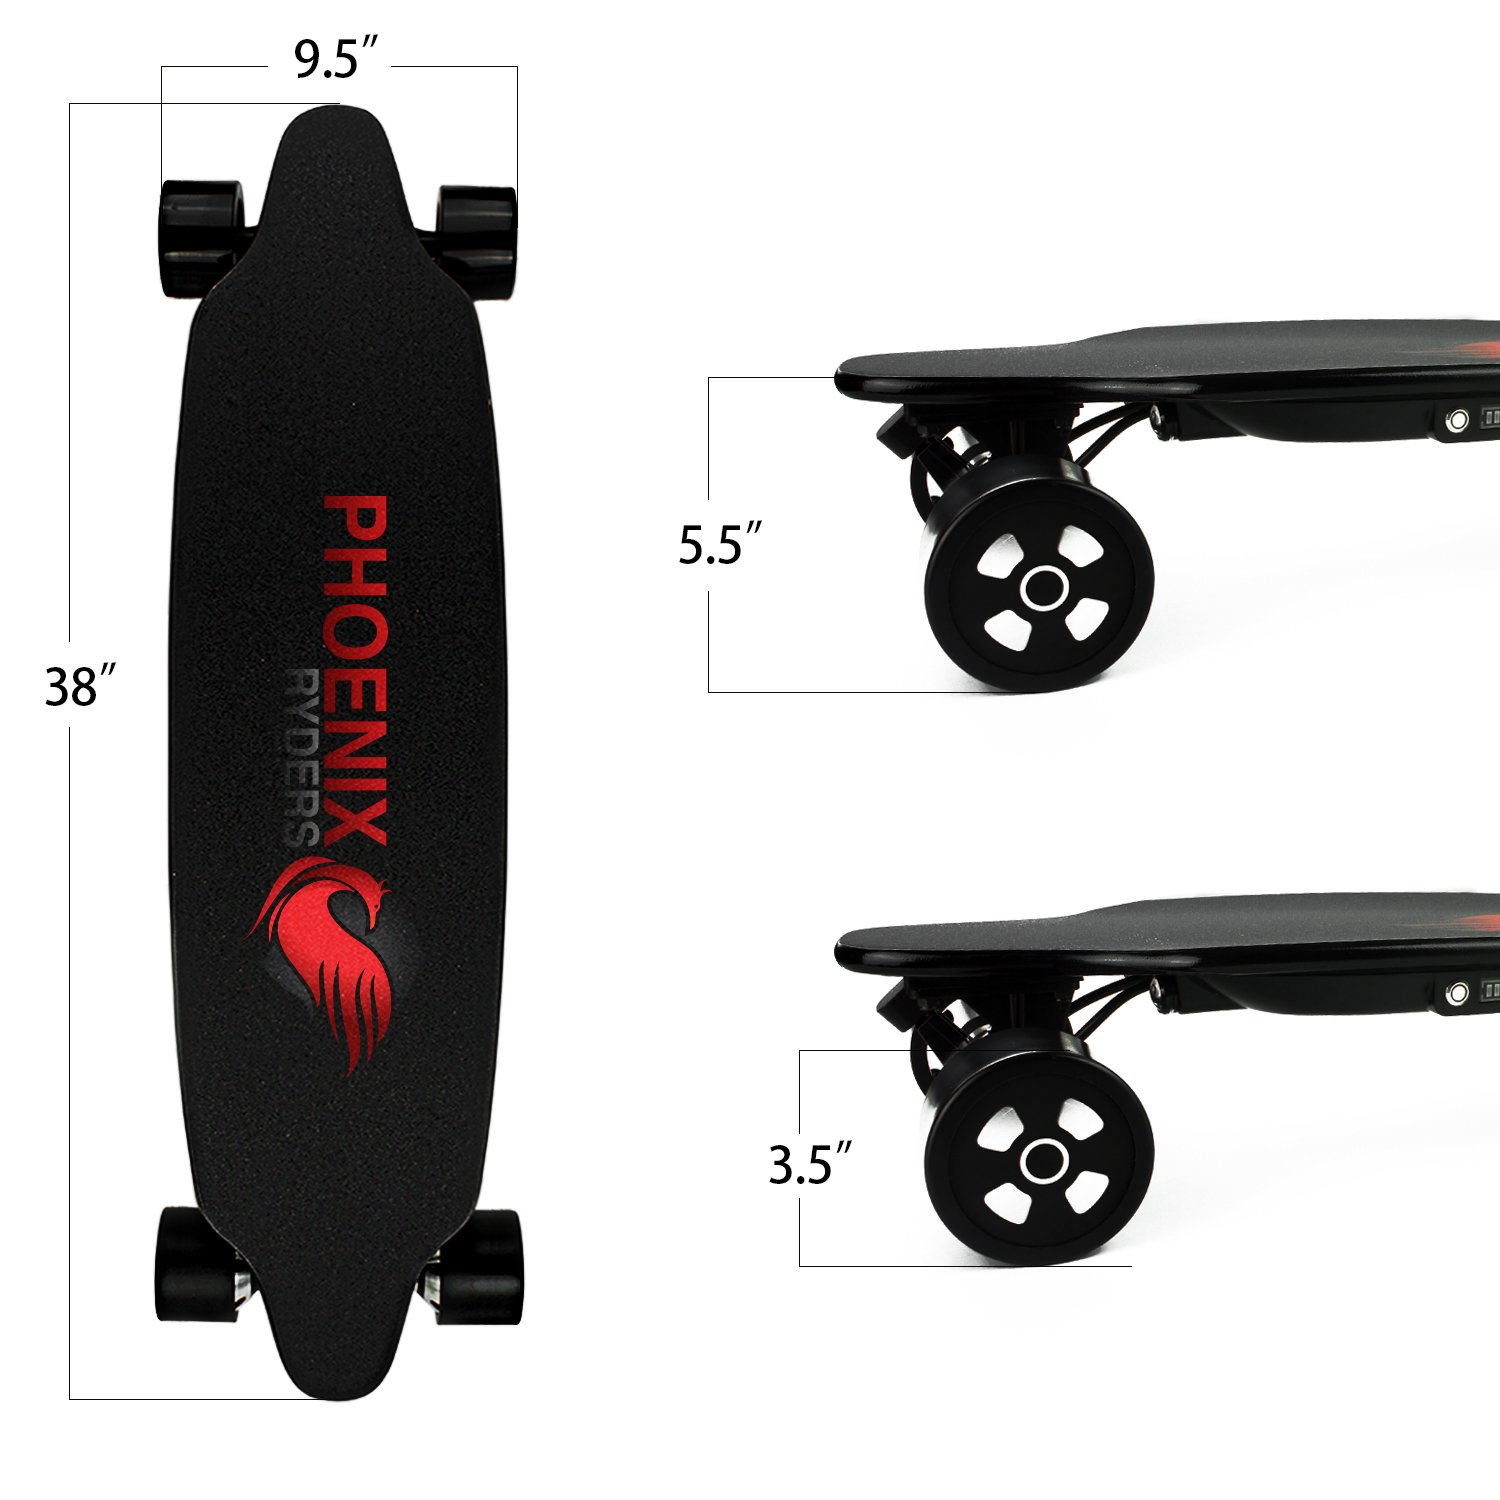 PHOENIX RYDERS Electric Skateboard Top Speed 25 MPH, Max Range 18.6 Miles, Dual Motors Electric Longboard with Remote Controller